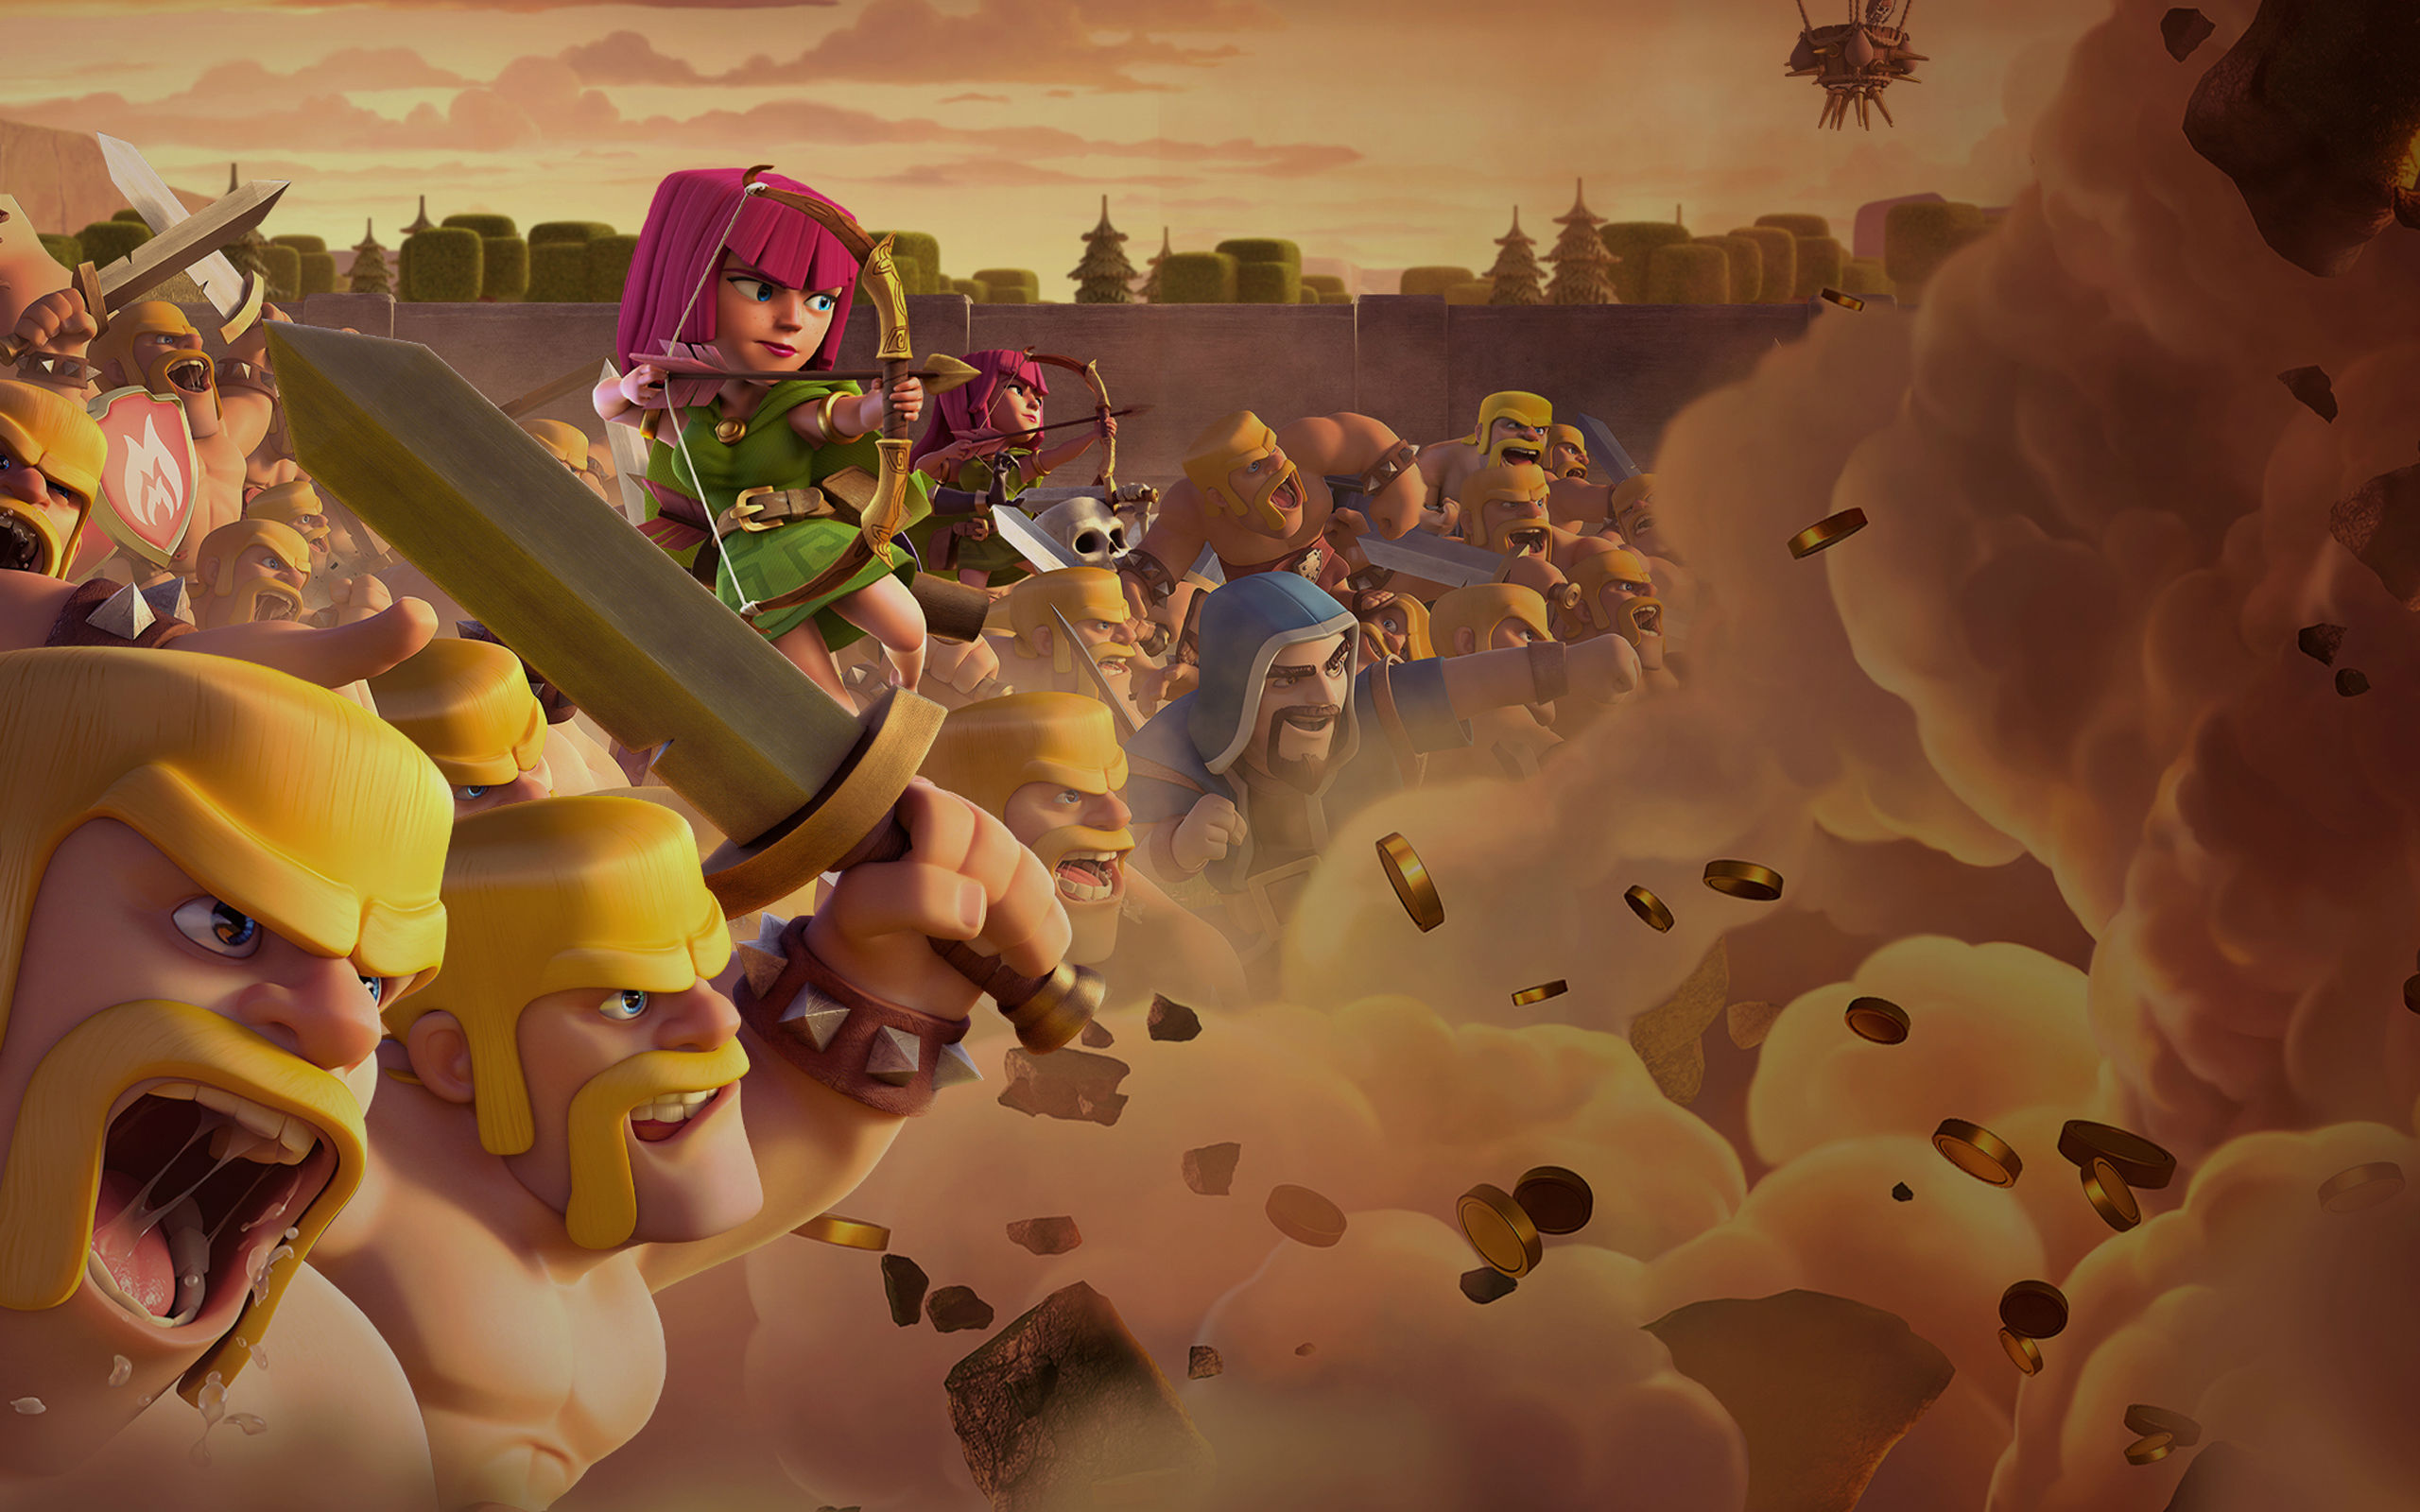 Clash of Clans Games 4k Ultra HD wallpaper   HD Wallpapers 2560x1600